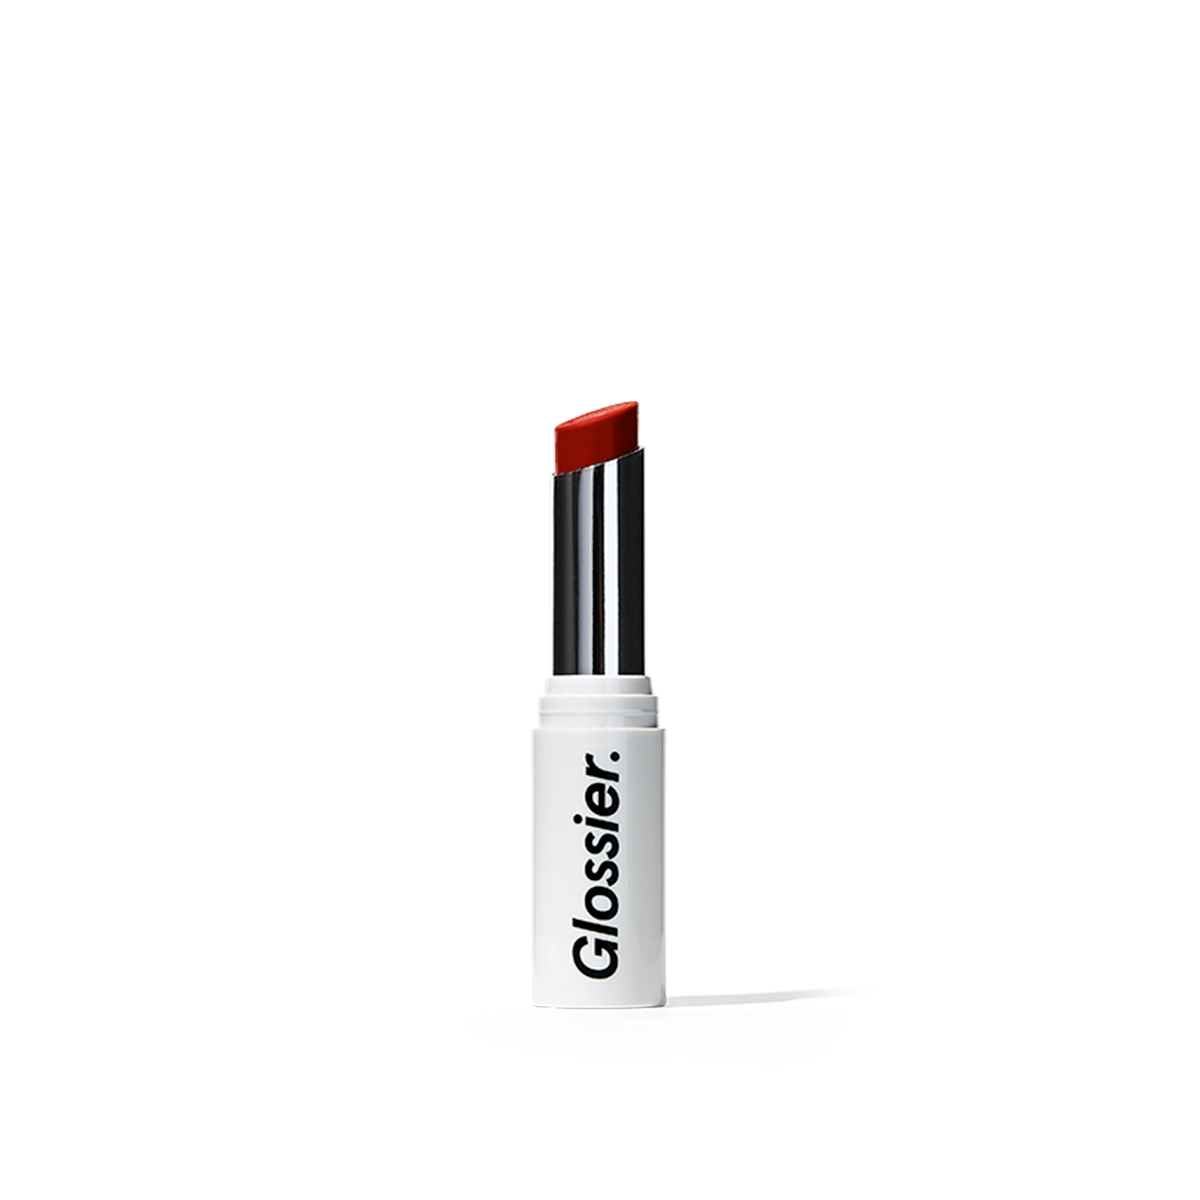 Glossier Generation G Lipstick in Jam, a deep berry magenta, 0.07 oz, enhancing sheer matte lipstick that adapts to you